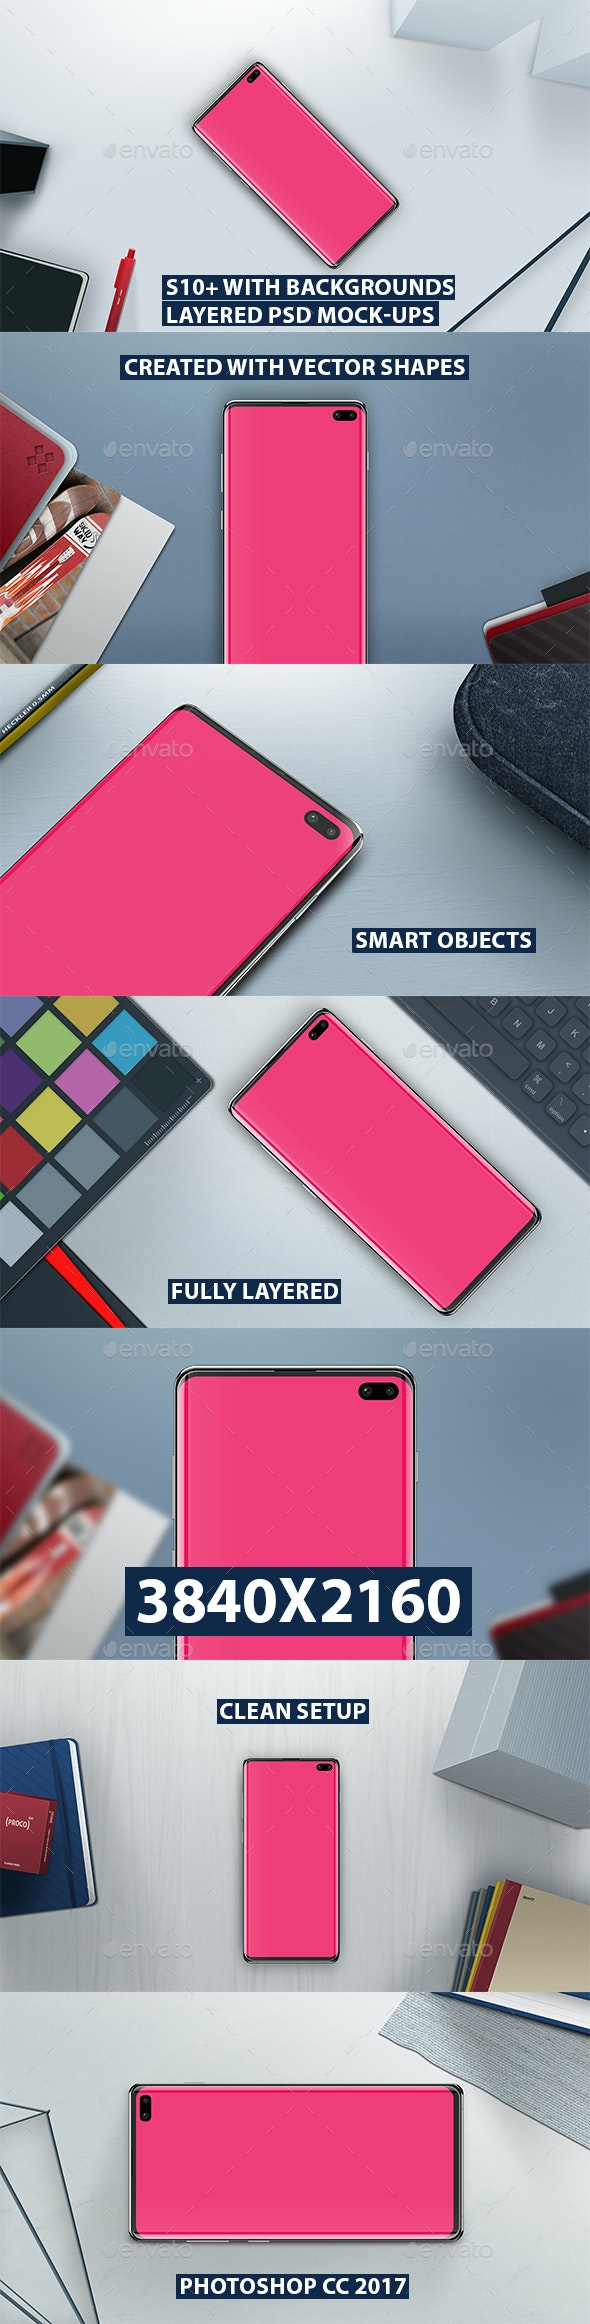 S10+ Layered PSD Mock-Ups with Backgrounds - Mobile Displays